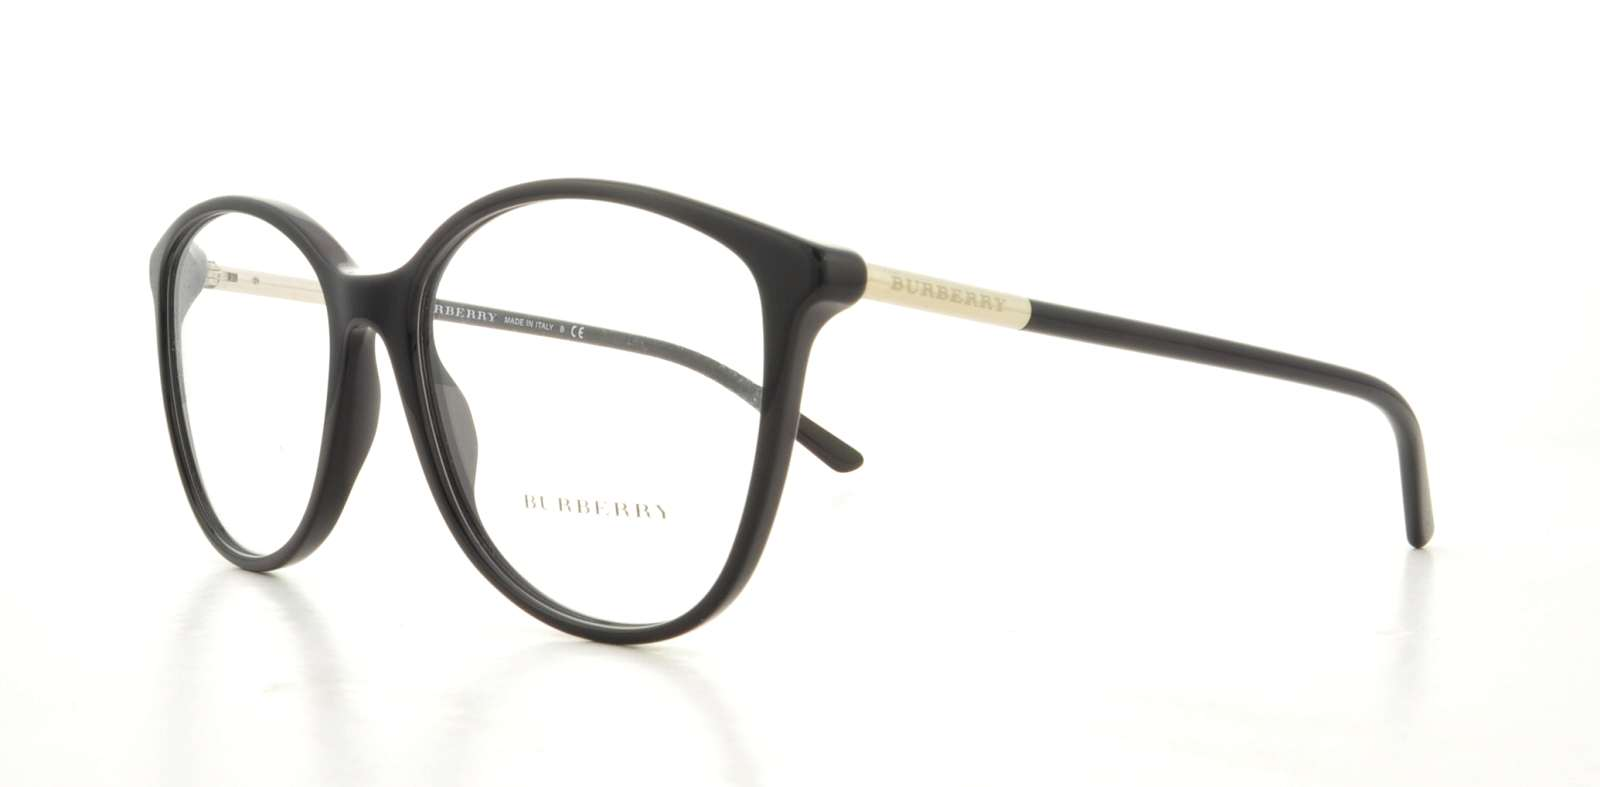 097a4a4eb79 Designer Frames Outlet. Burberry BE2128